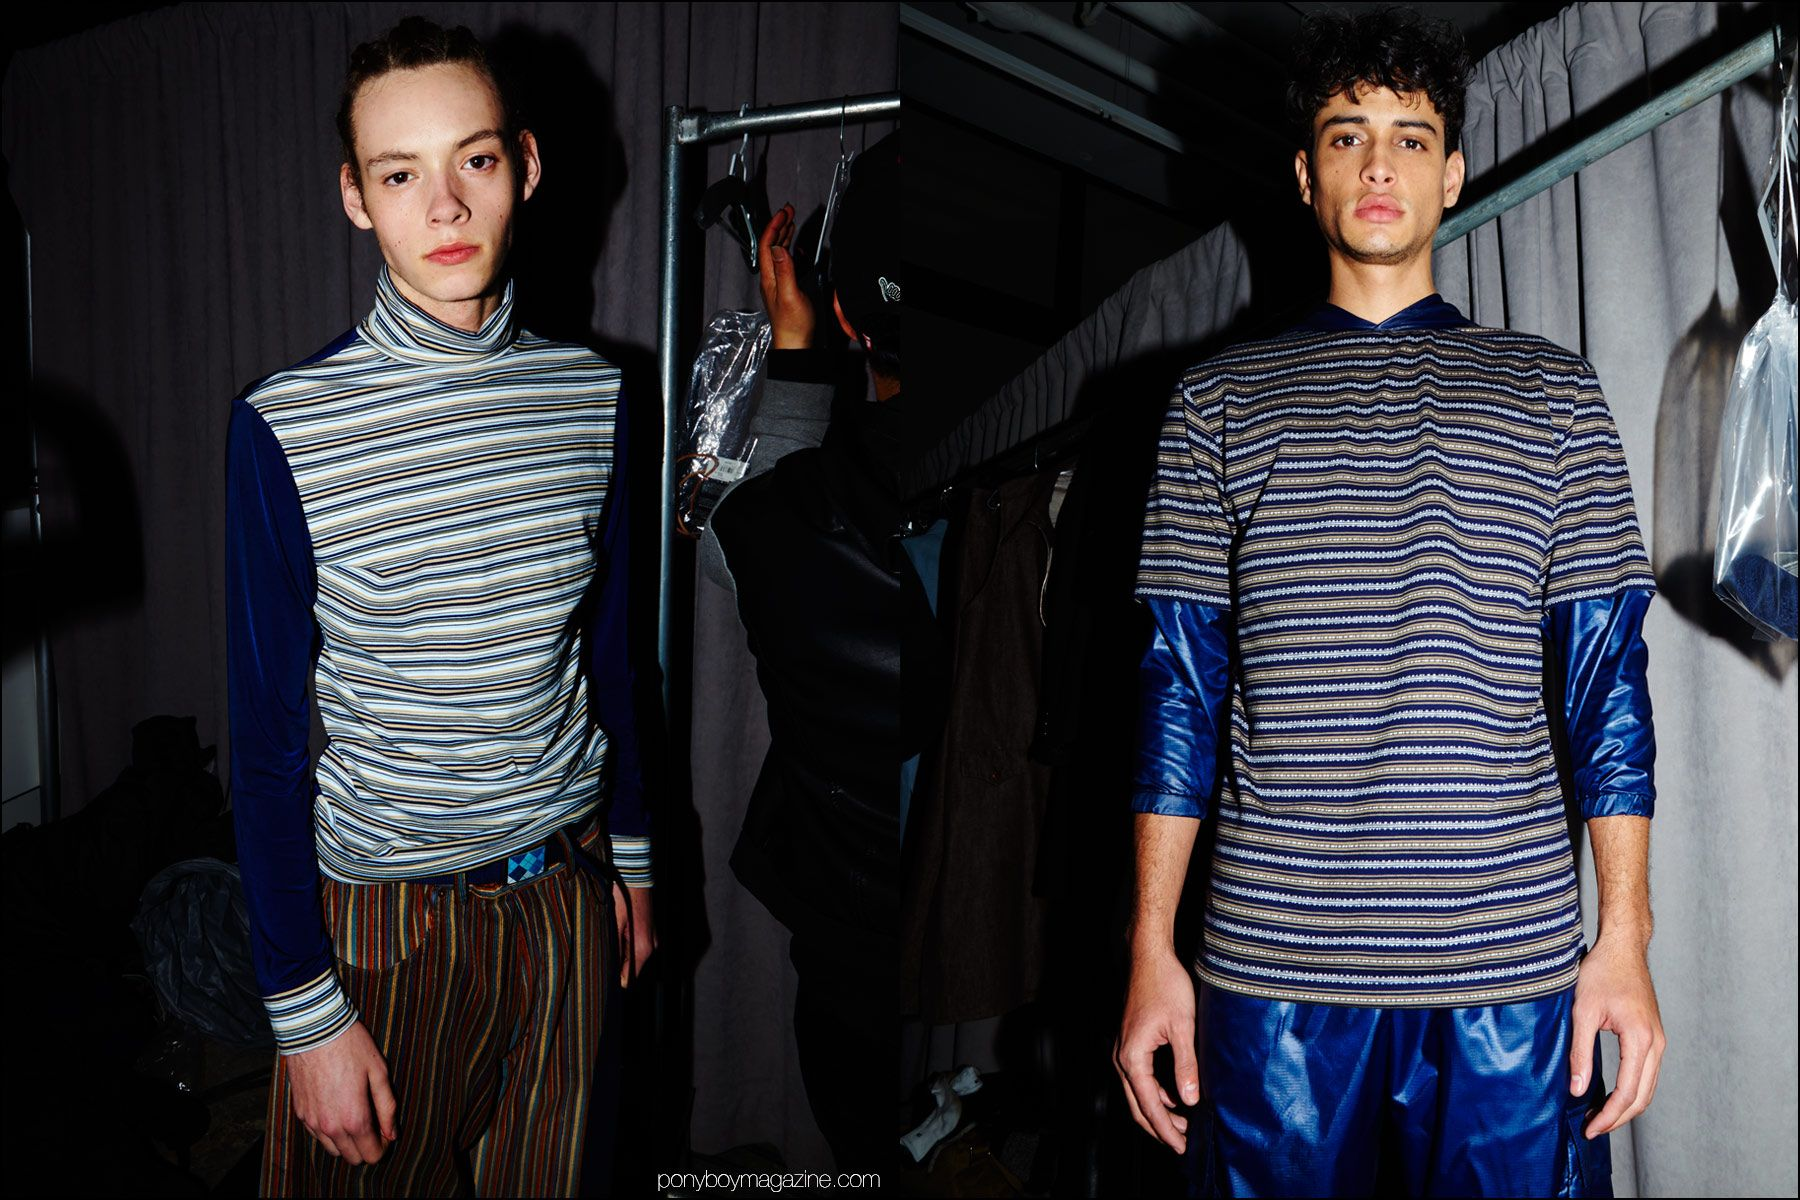 Striped menswear photographed backstage at Gypsy Sport F/W16 show. Photography by Alexander Thompson for Ponyboy magazine NY.